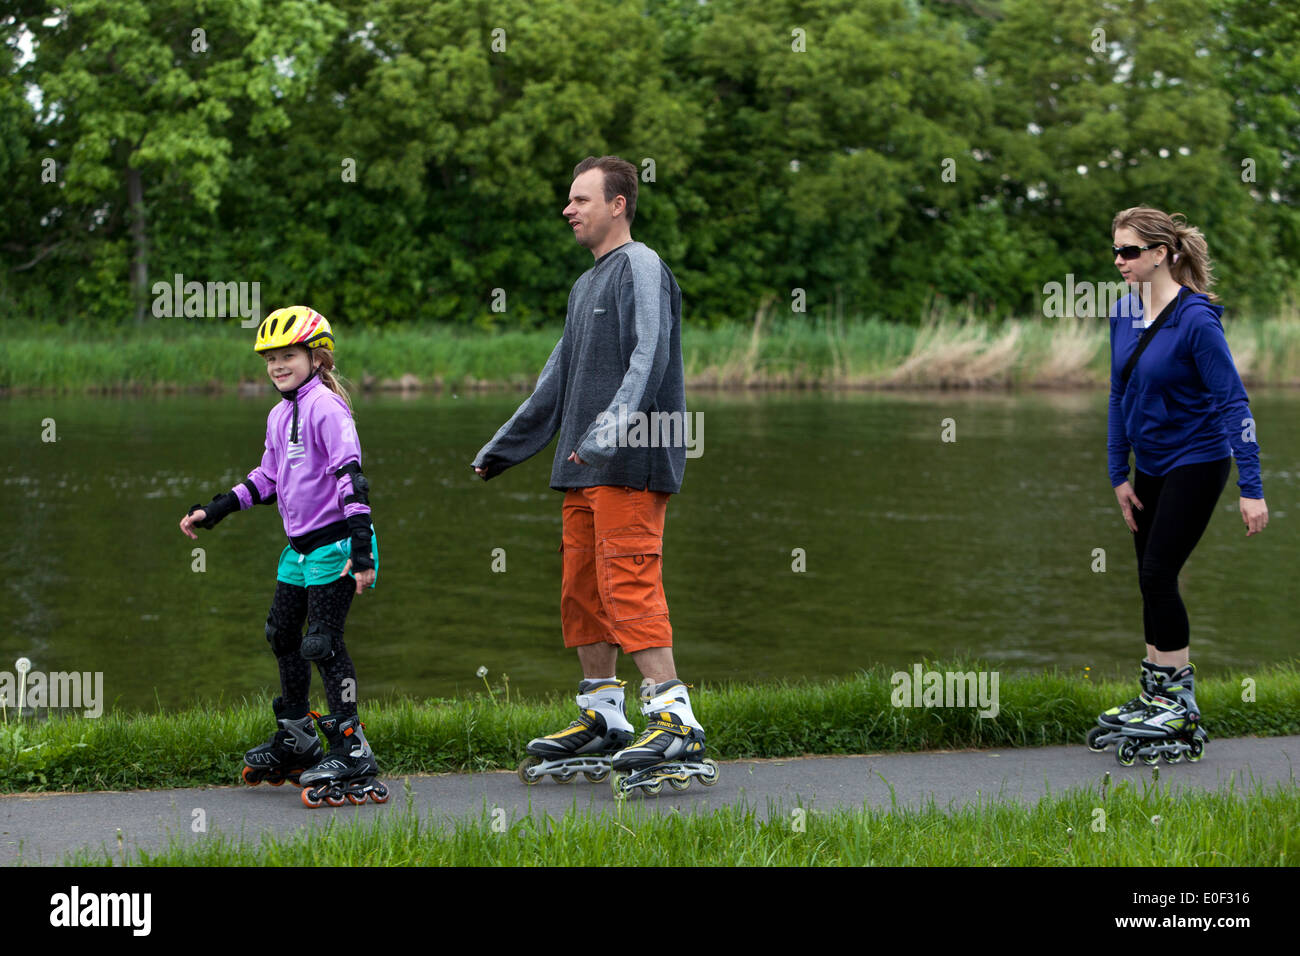 People on the bike trail, roller skating family - Stock Image